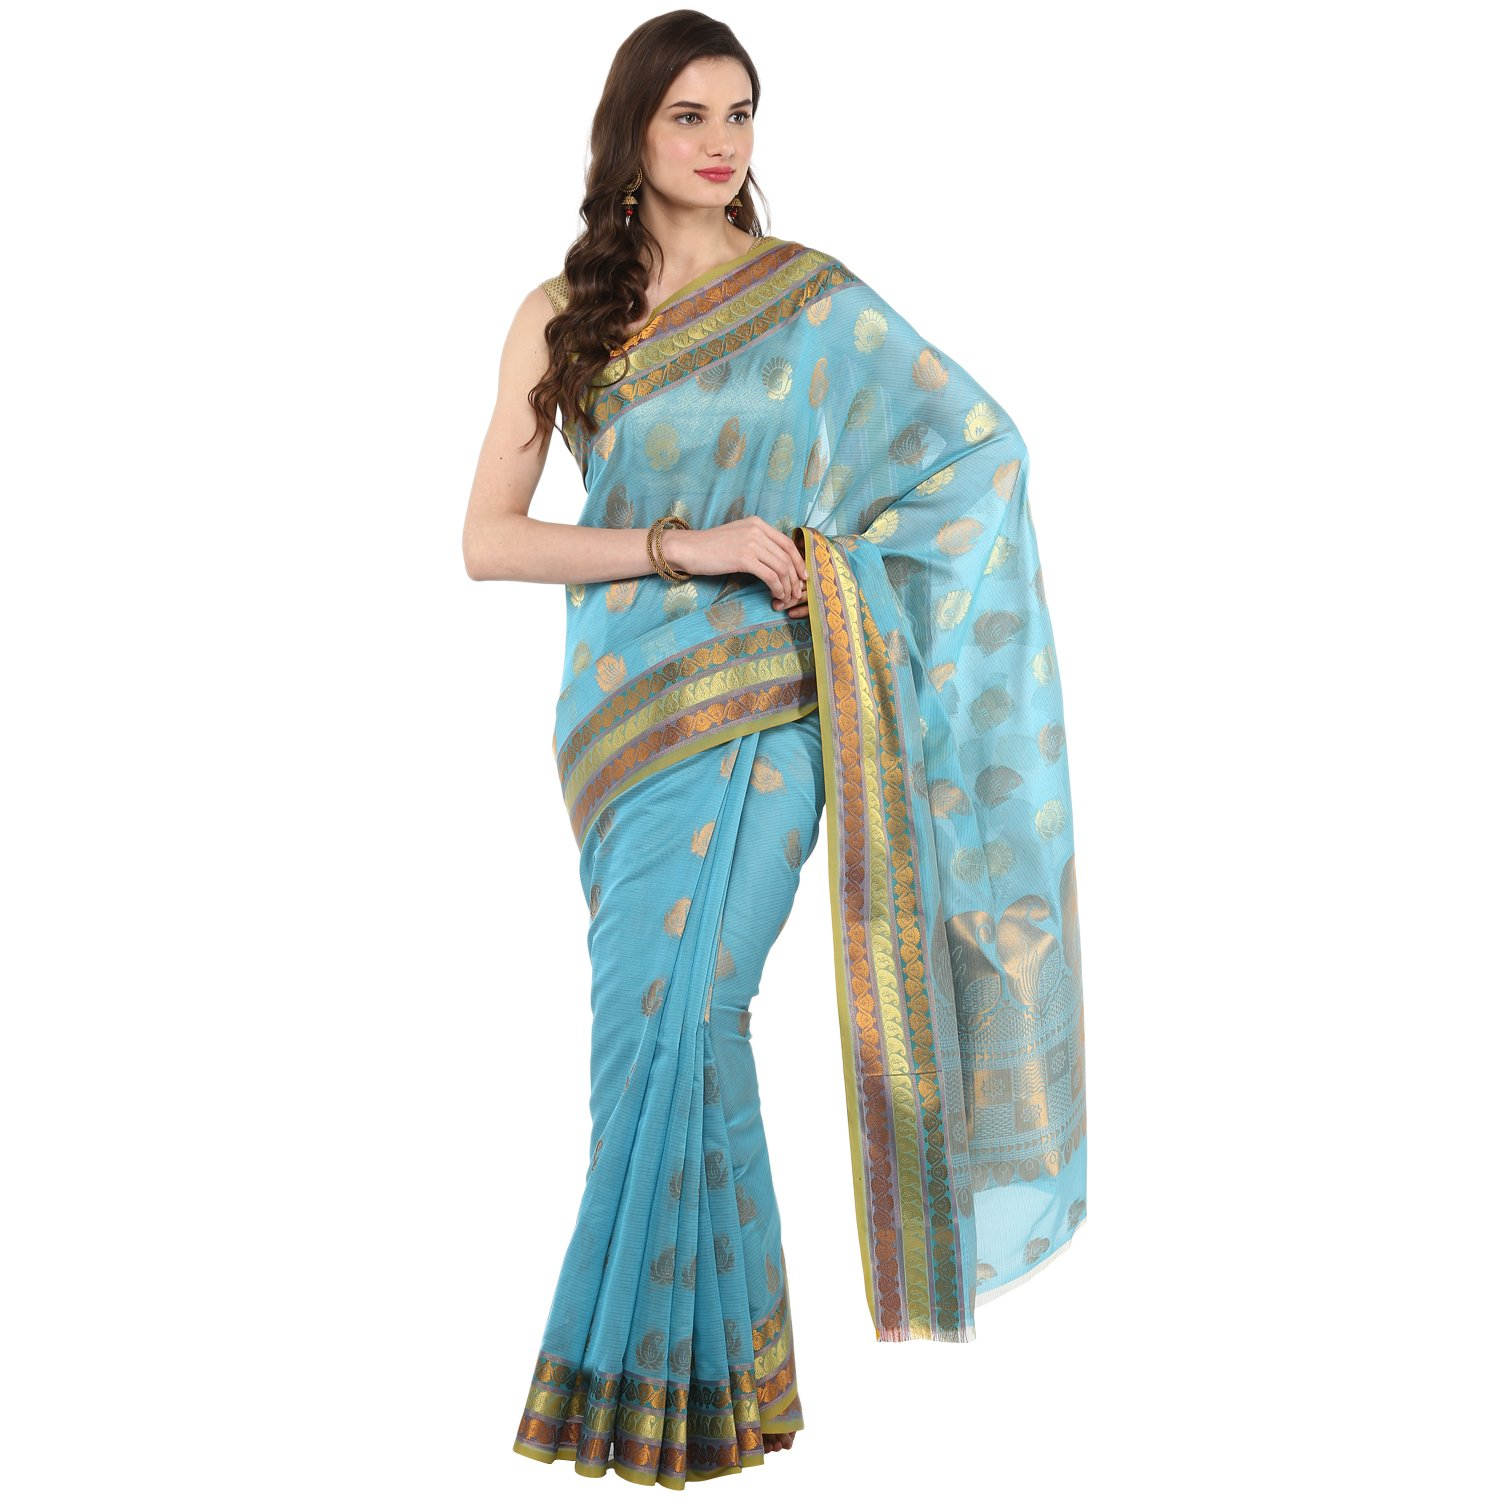 Fasherati Turqoise Color Organza Silk Saree With Brocade Border And Blouse For Women